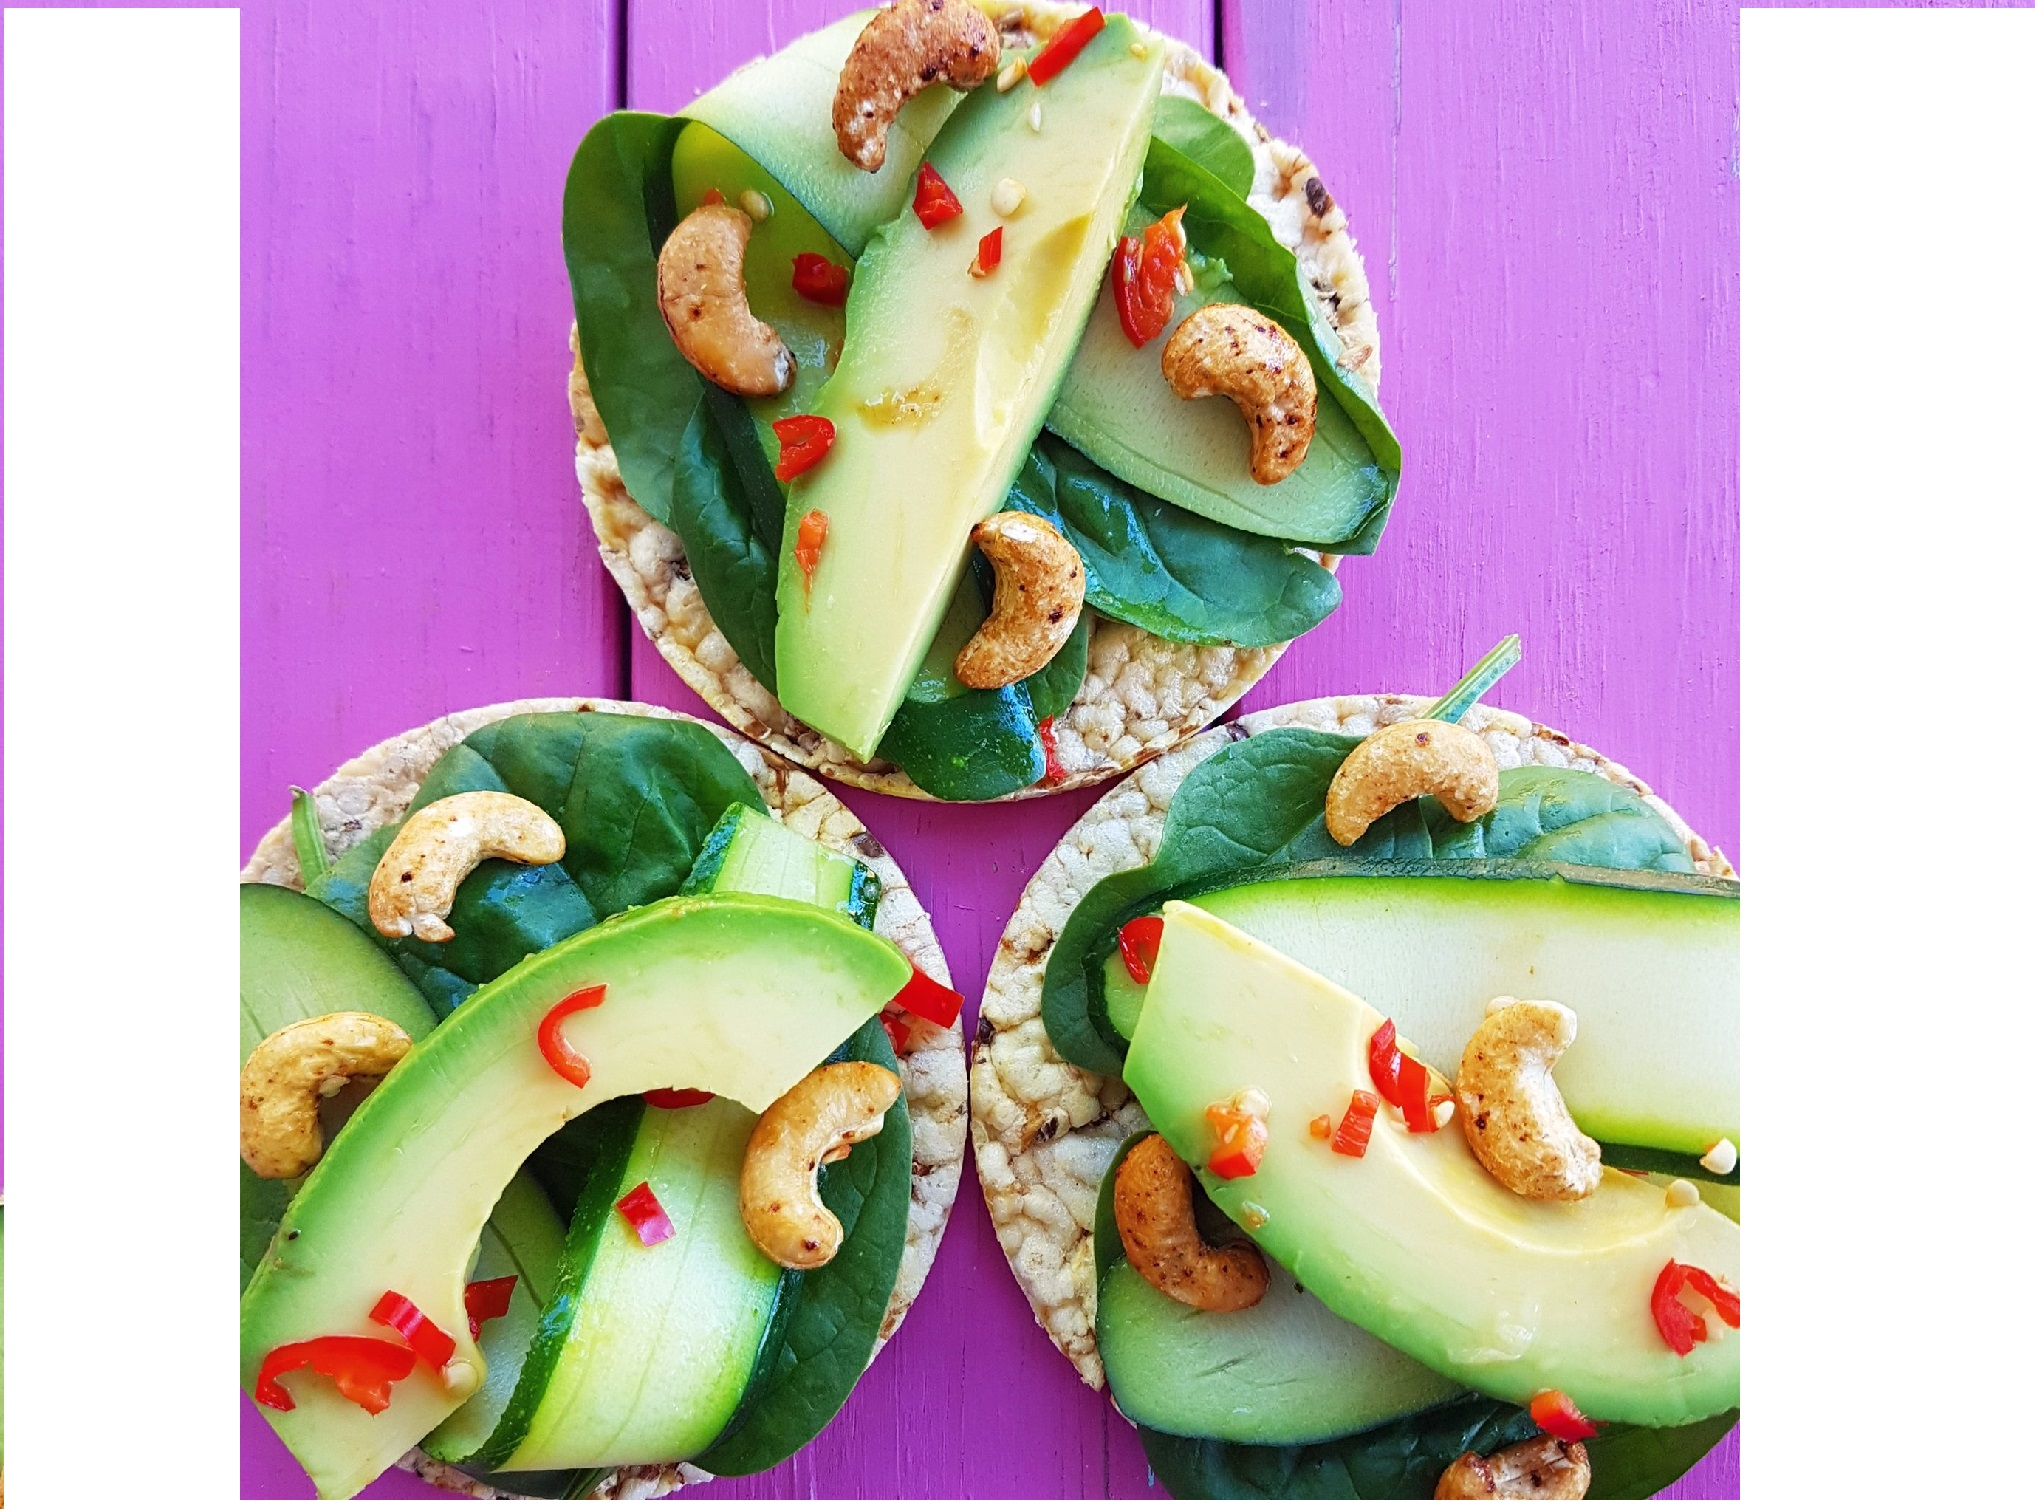 CORN THINS with Avocado, Cashews, Zucchini & Spinach leaves